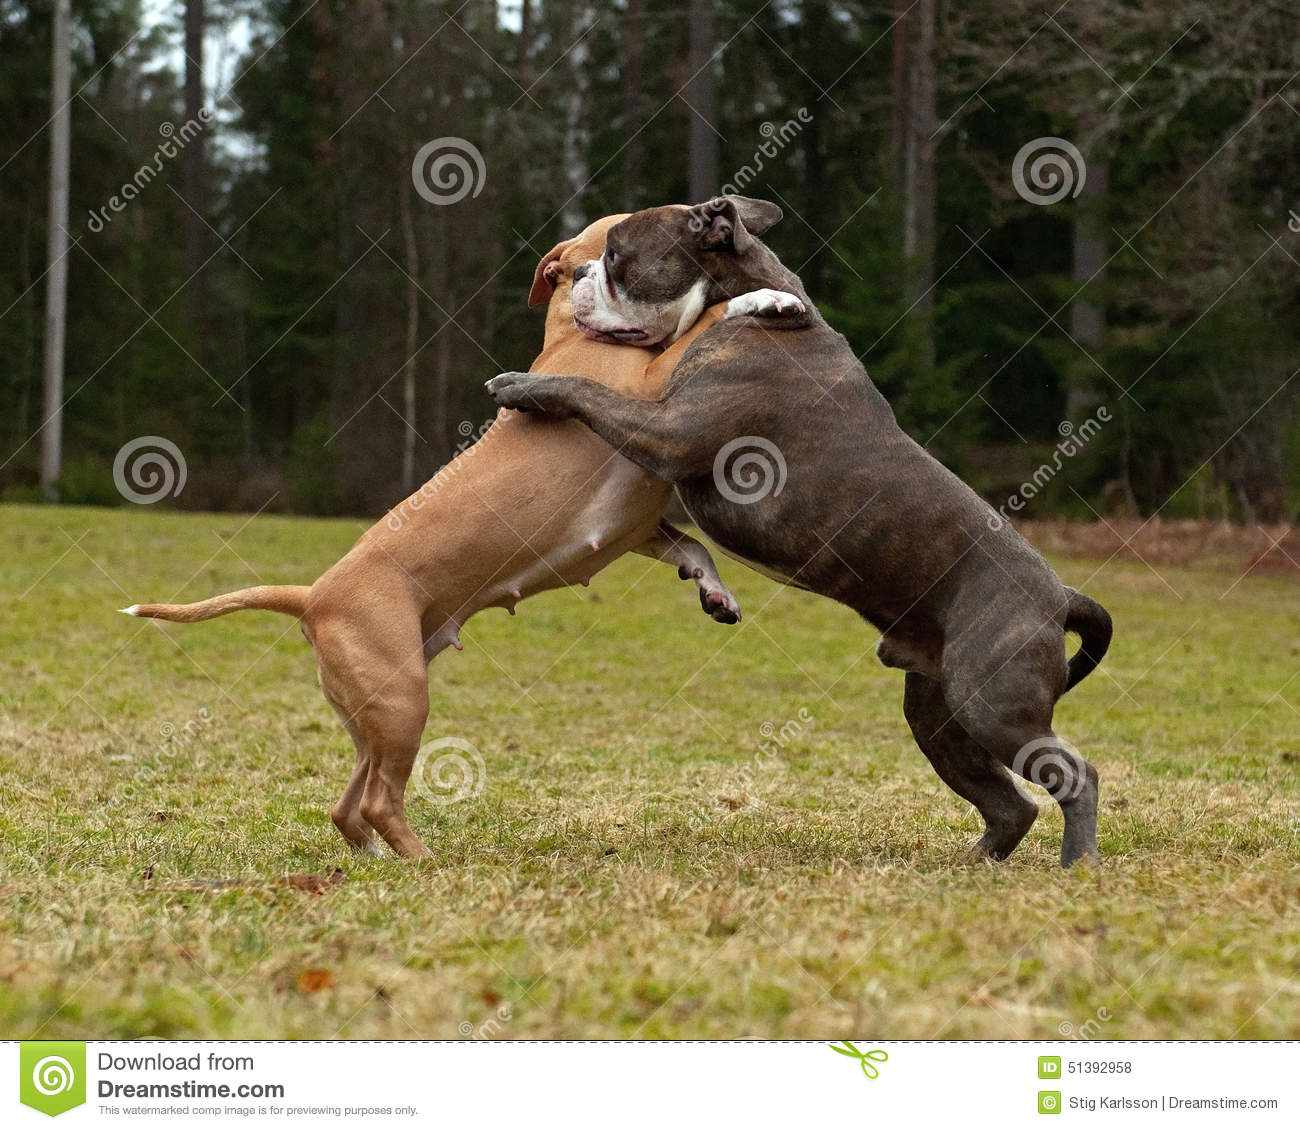 Pitbull Dog Fight Video Download